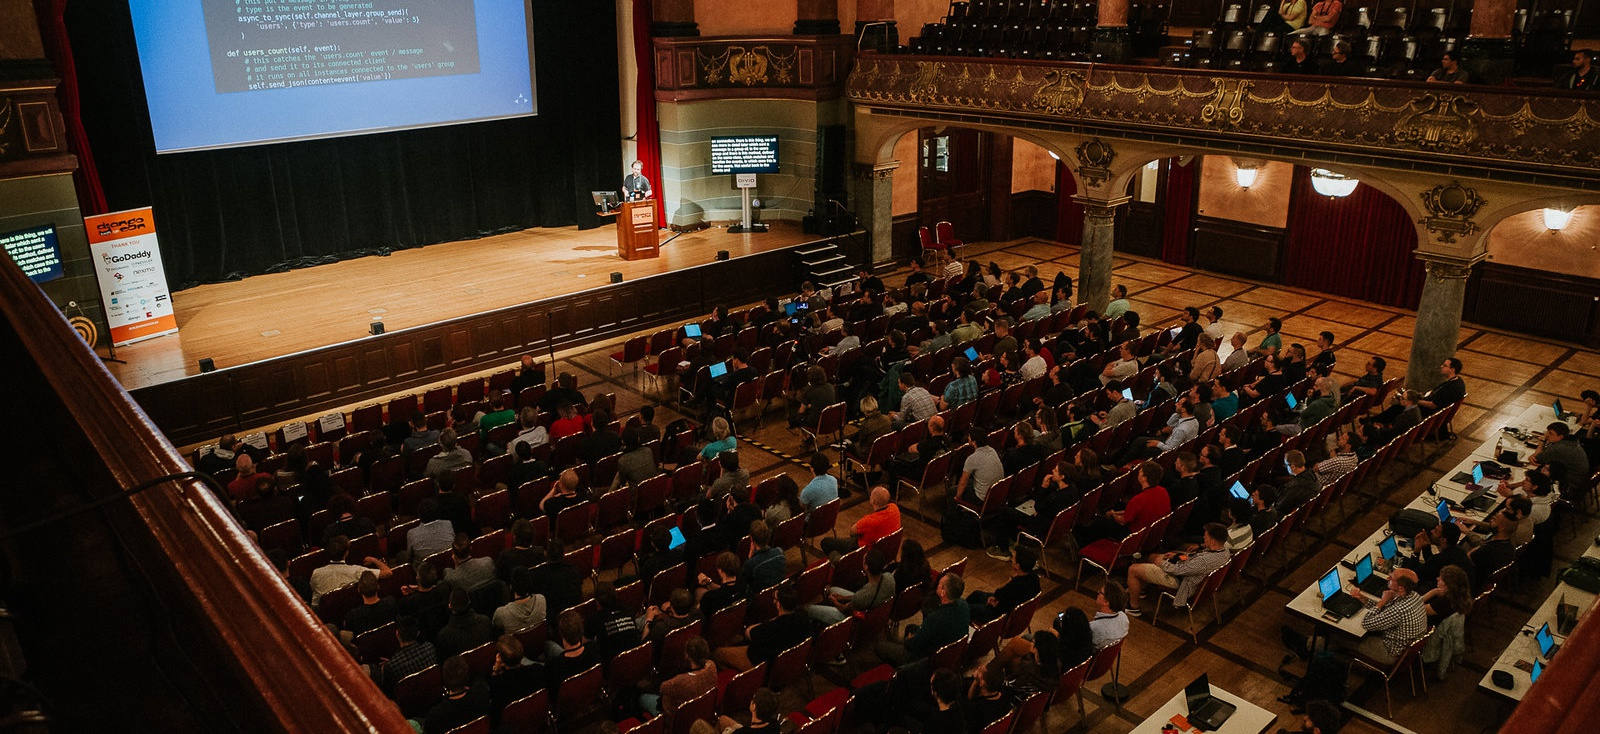 "Iacopo a DjangoCon Europe con il talk ""Real time applications with Django"""